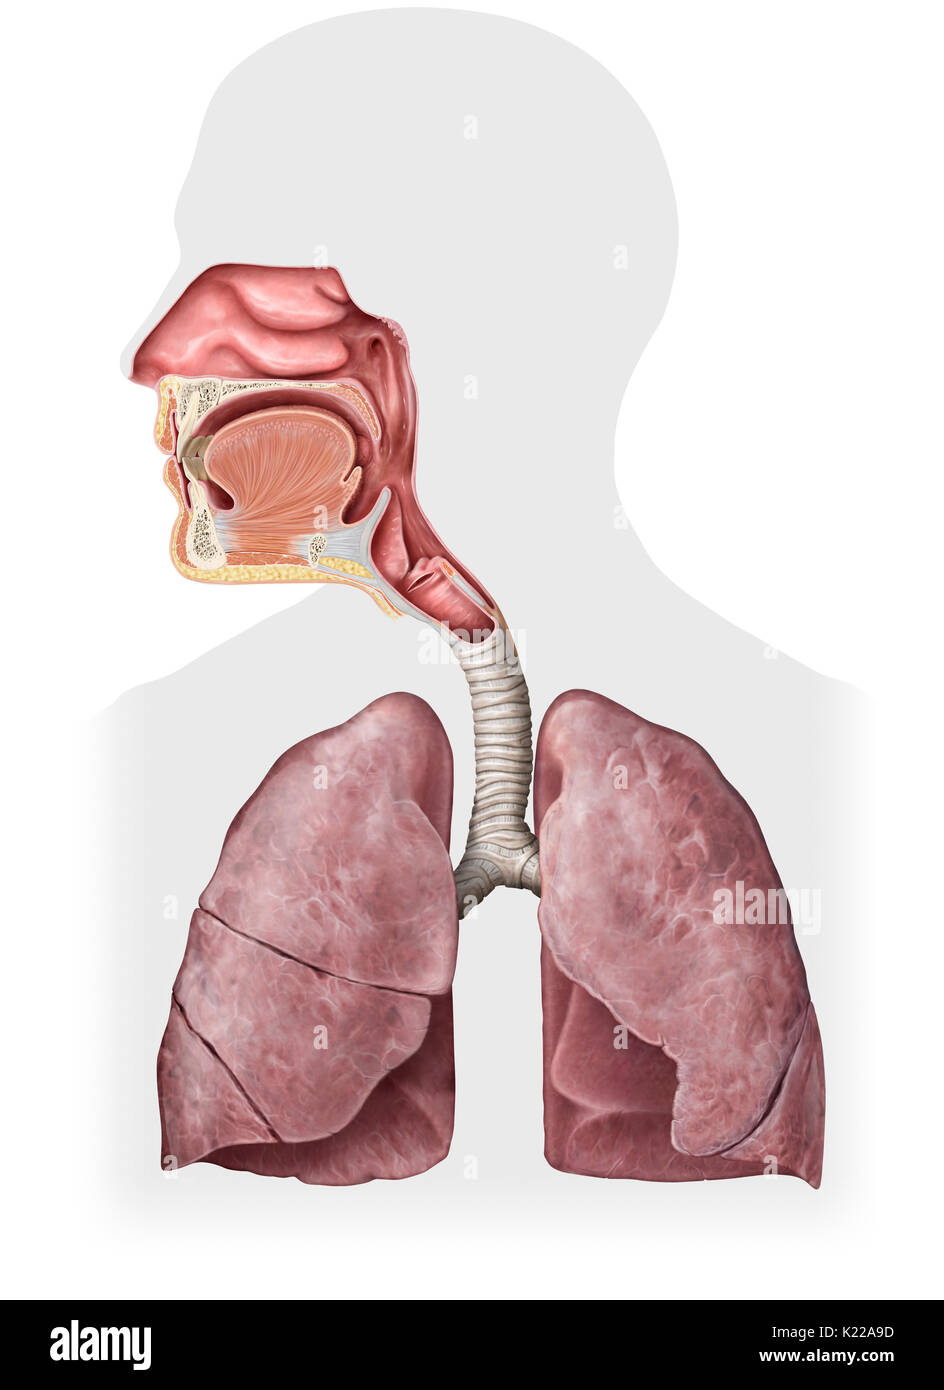 This Image Shows The Organs Of The Respiratory System Which Are The